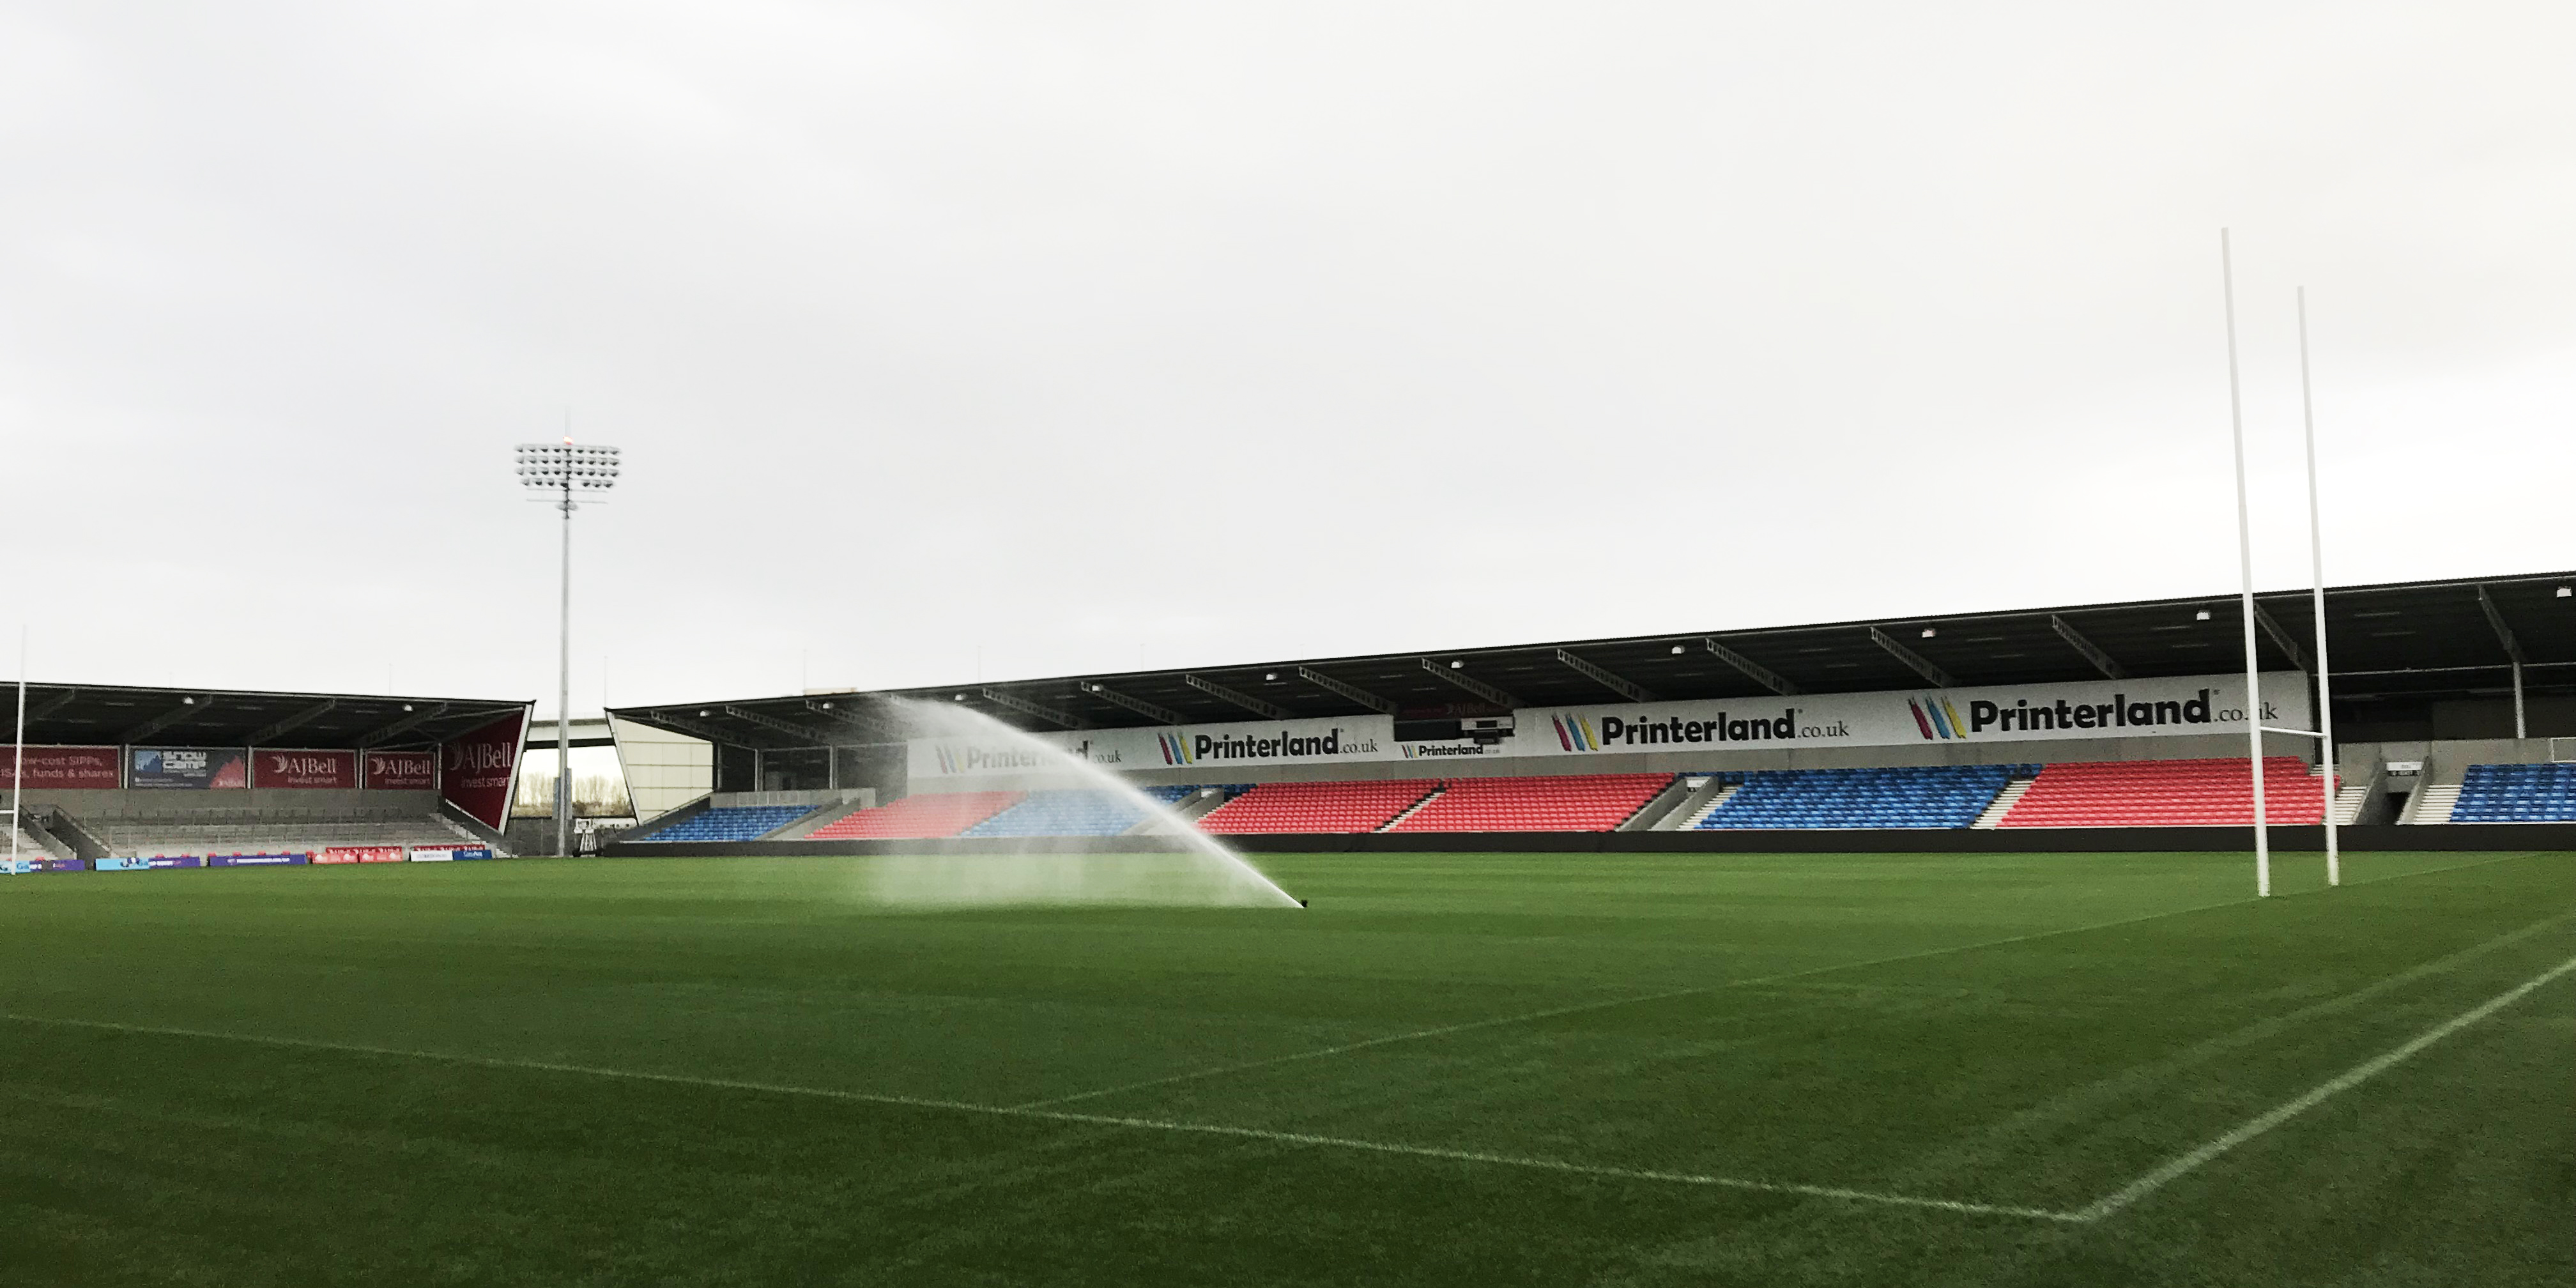 Image: Rugby pitch